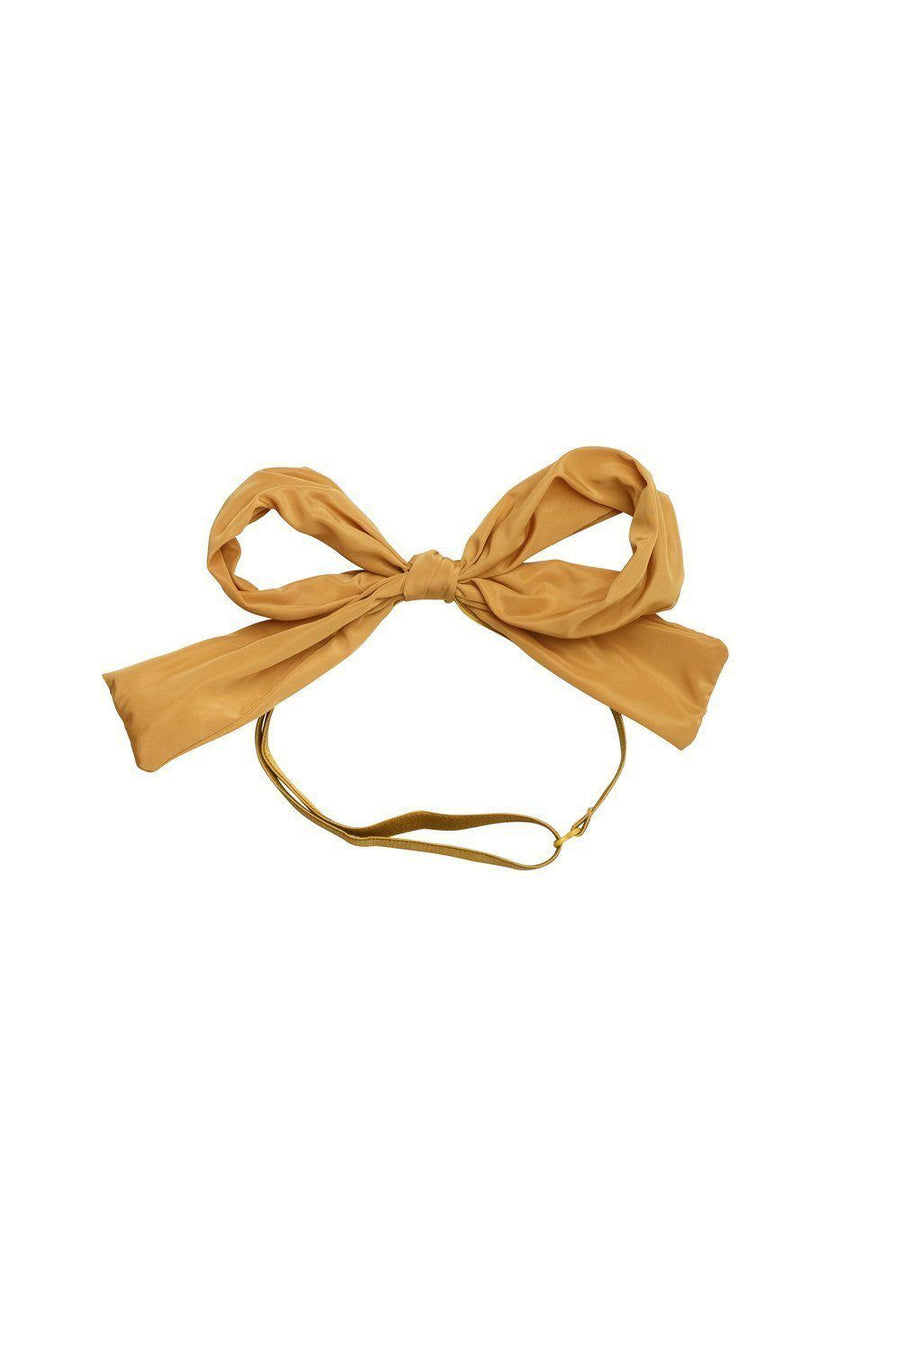 Party Bow Wrap - Mustard Taffeta